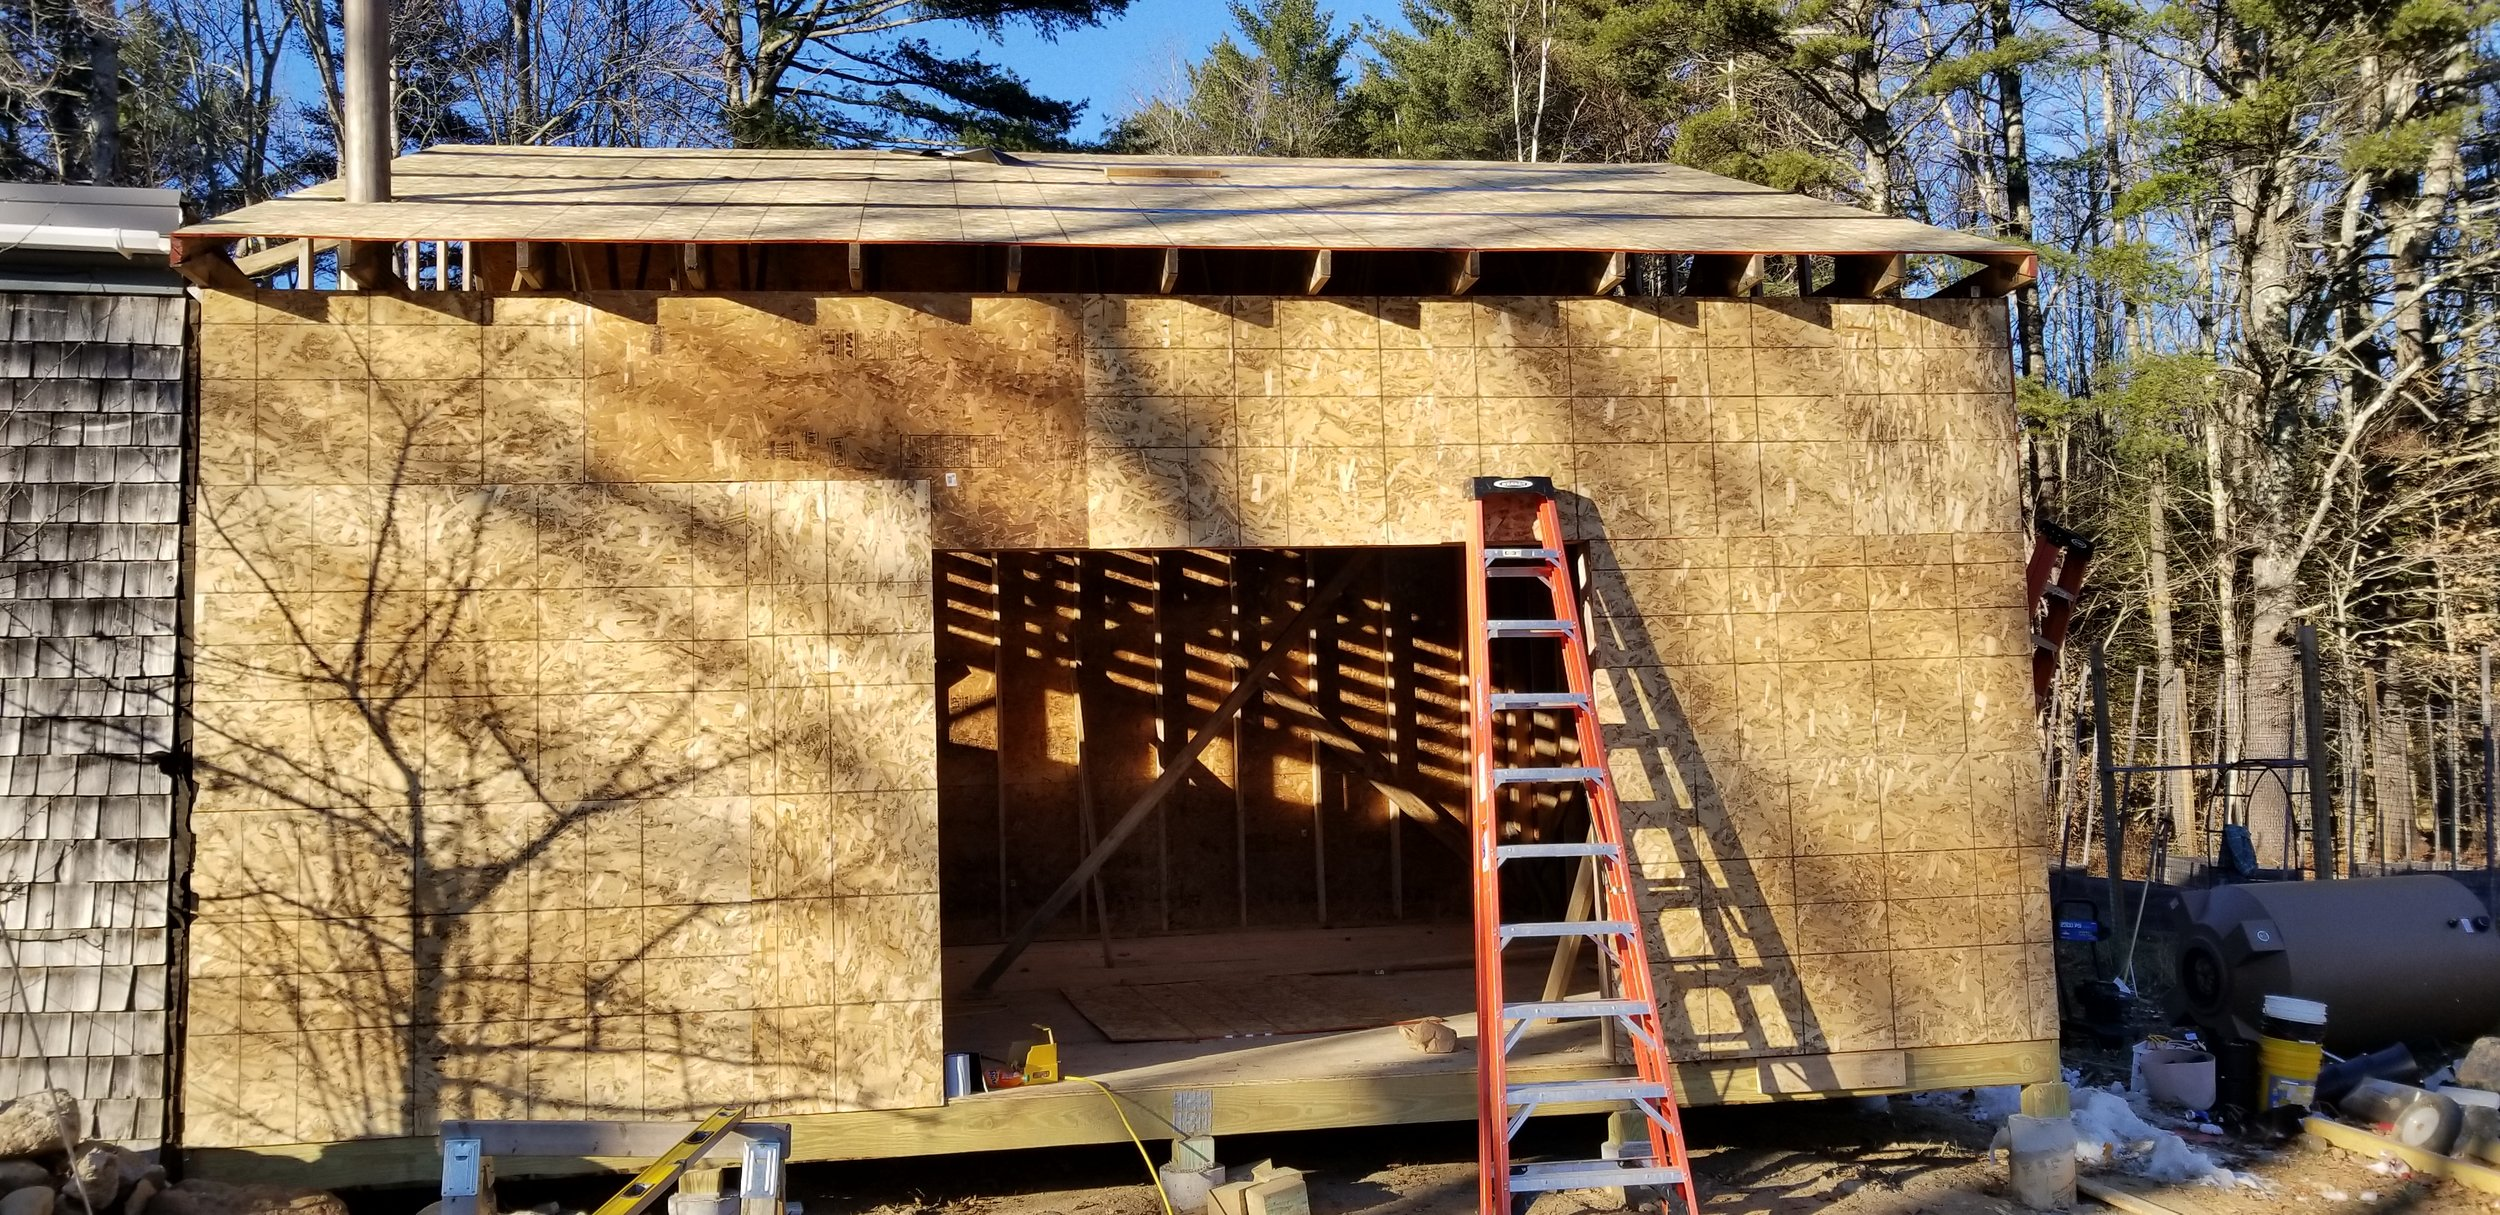 Almsot complete! - Finish the roof and siding and we can start inside!